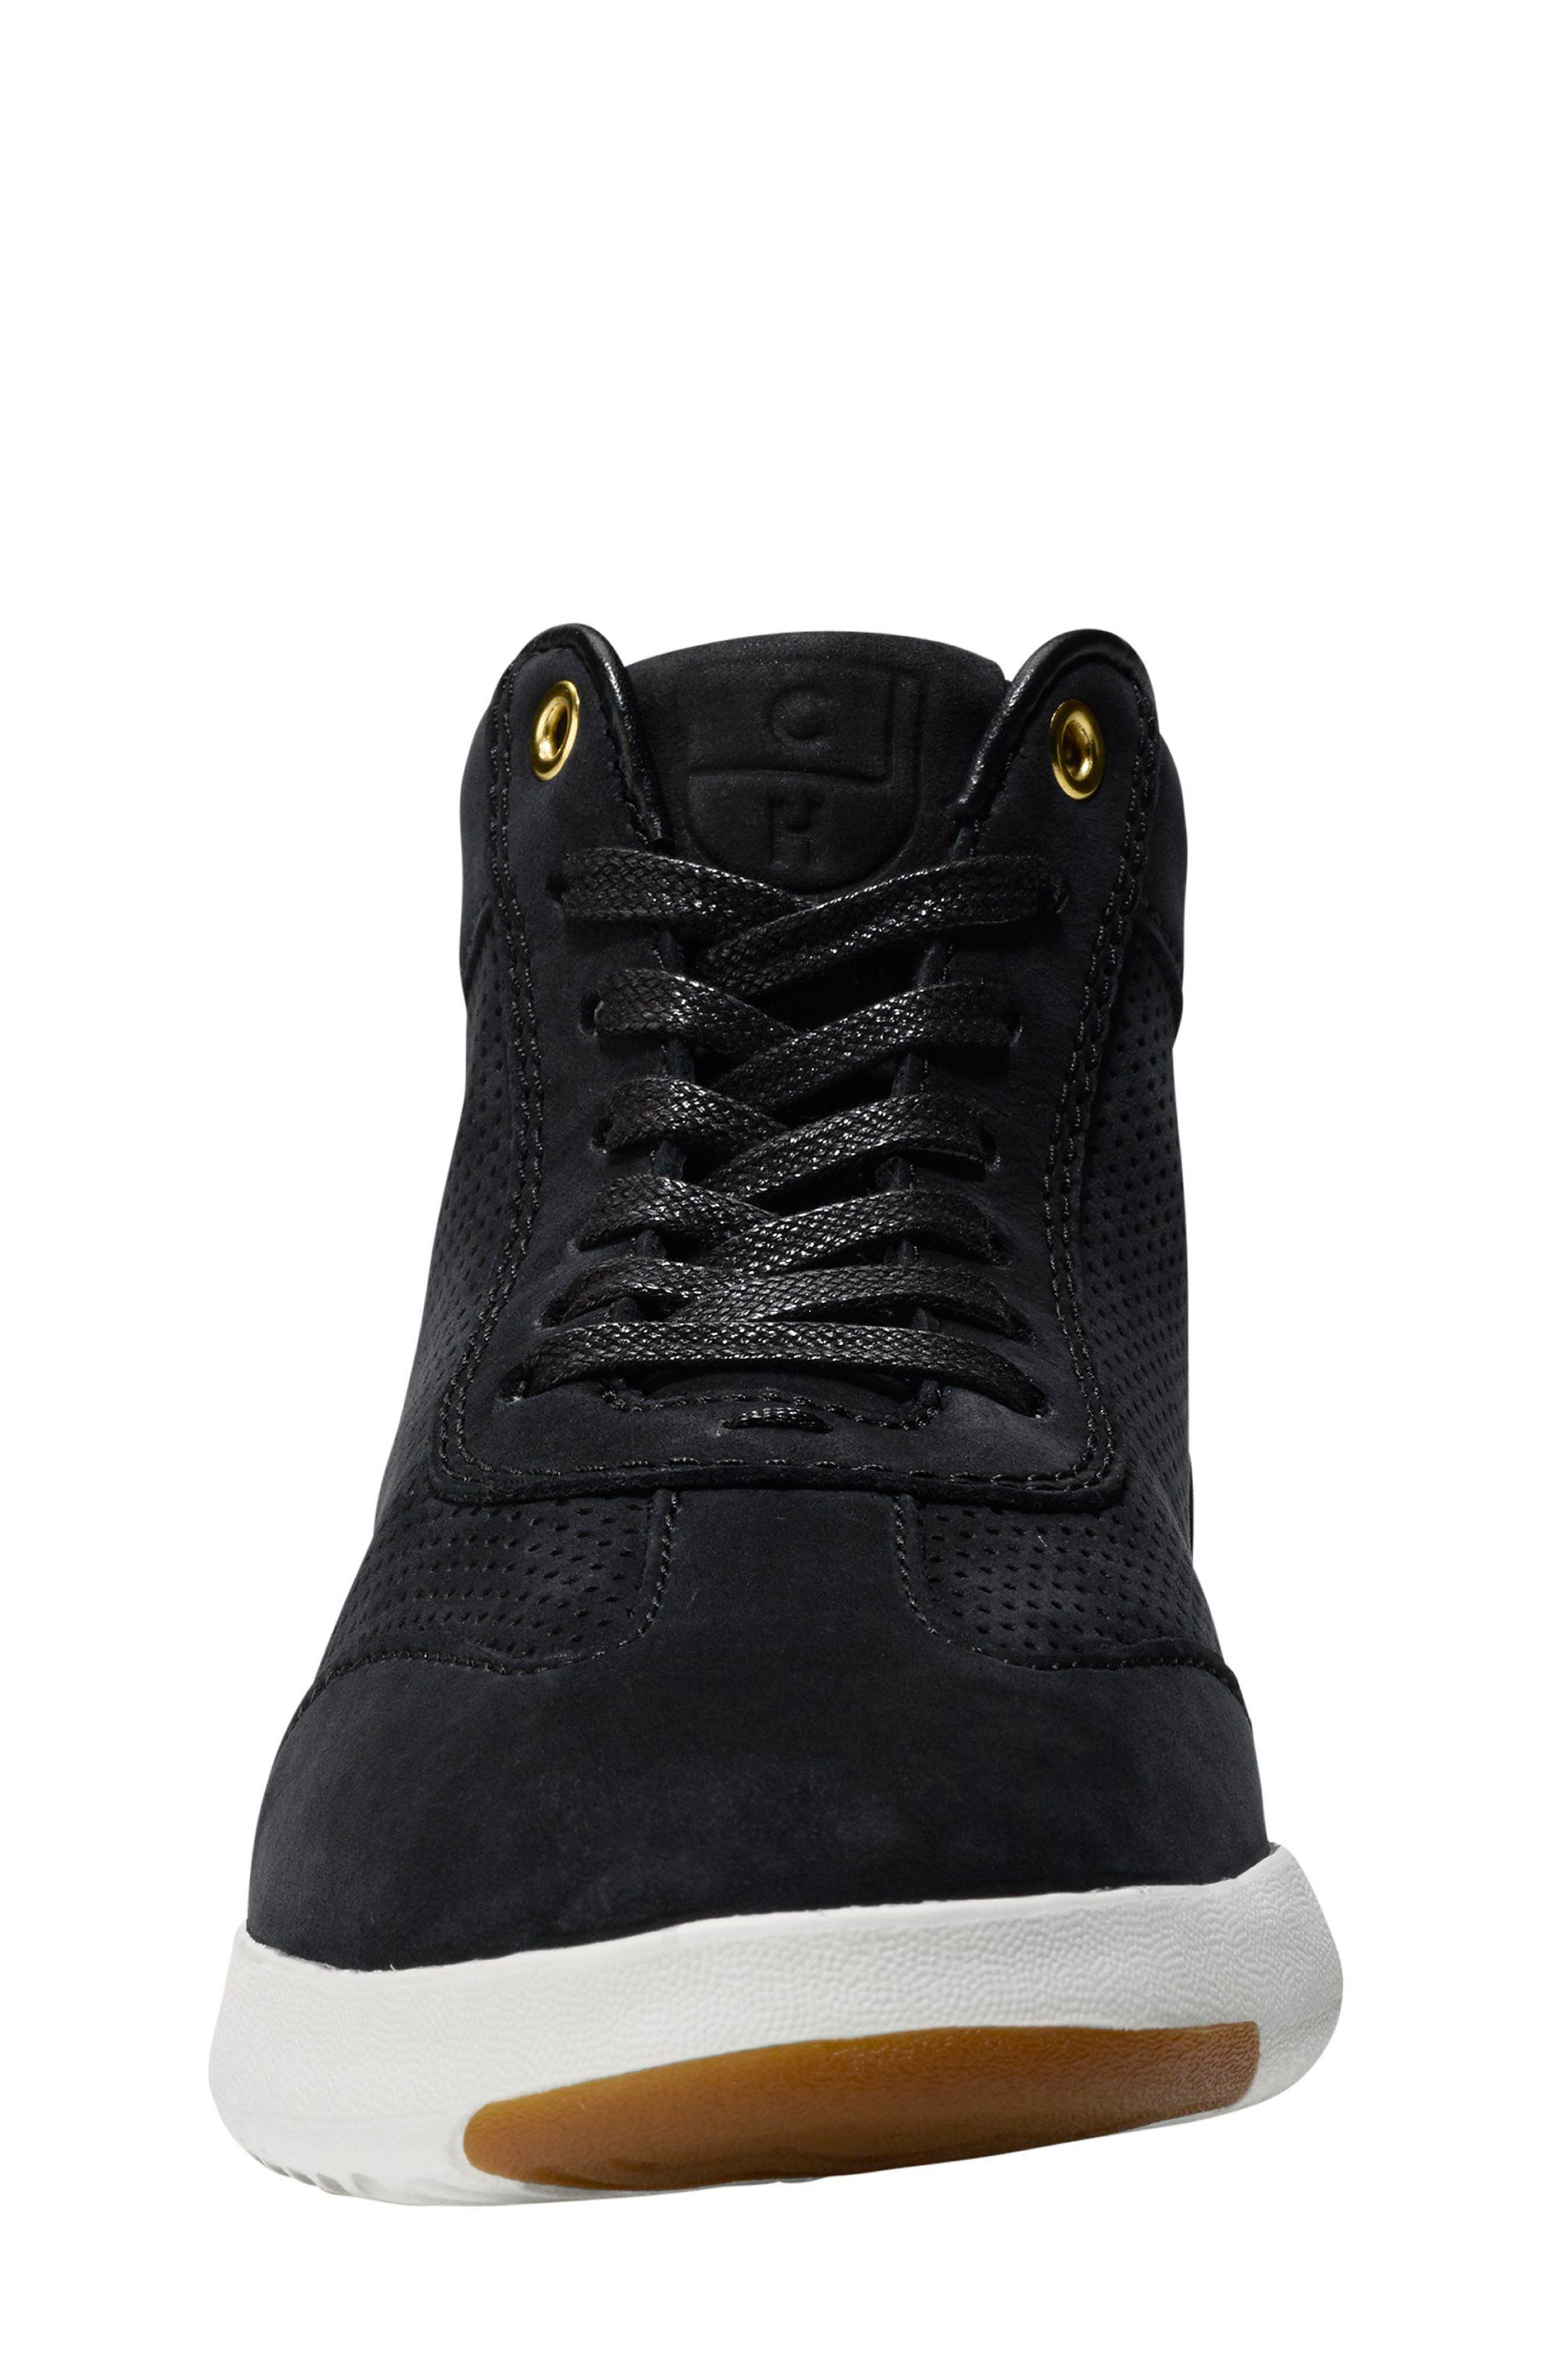 GrandPro High Top Sneaker,                             Alternate thumbnail 3, color,                             Black Nubuck Leather